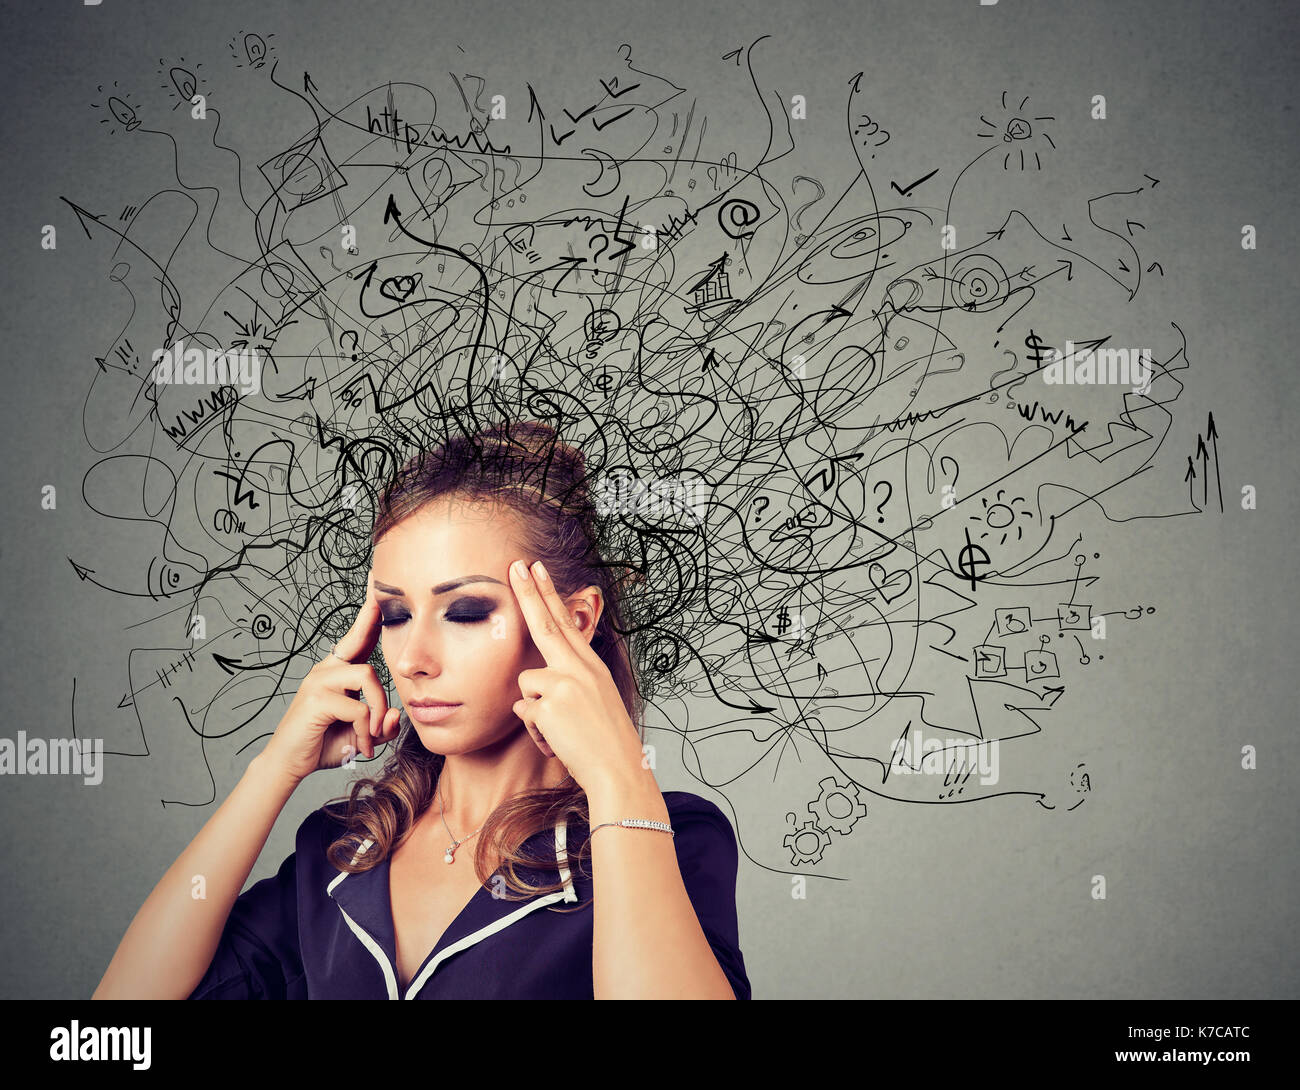 Thoughtful woman with a mess in her head - Stock Image